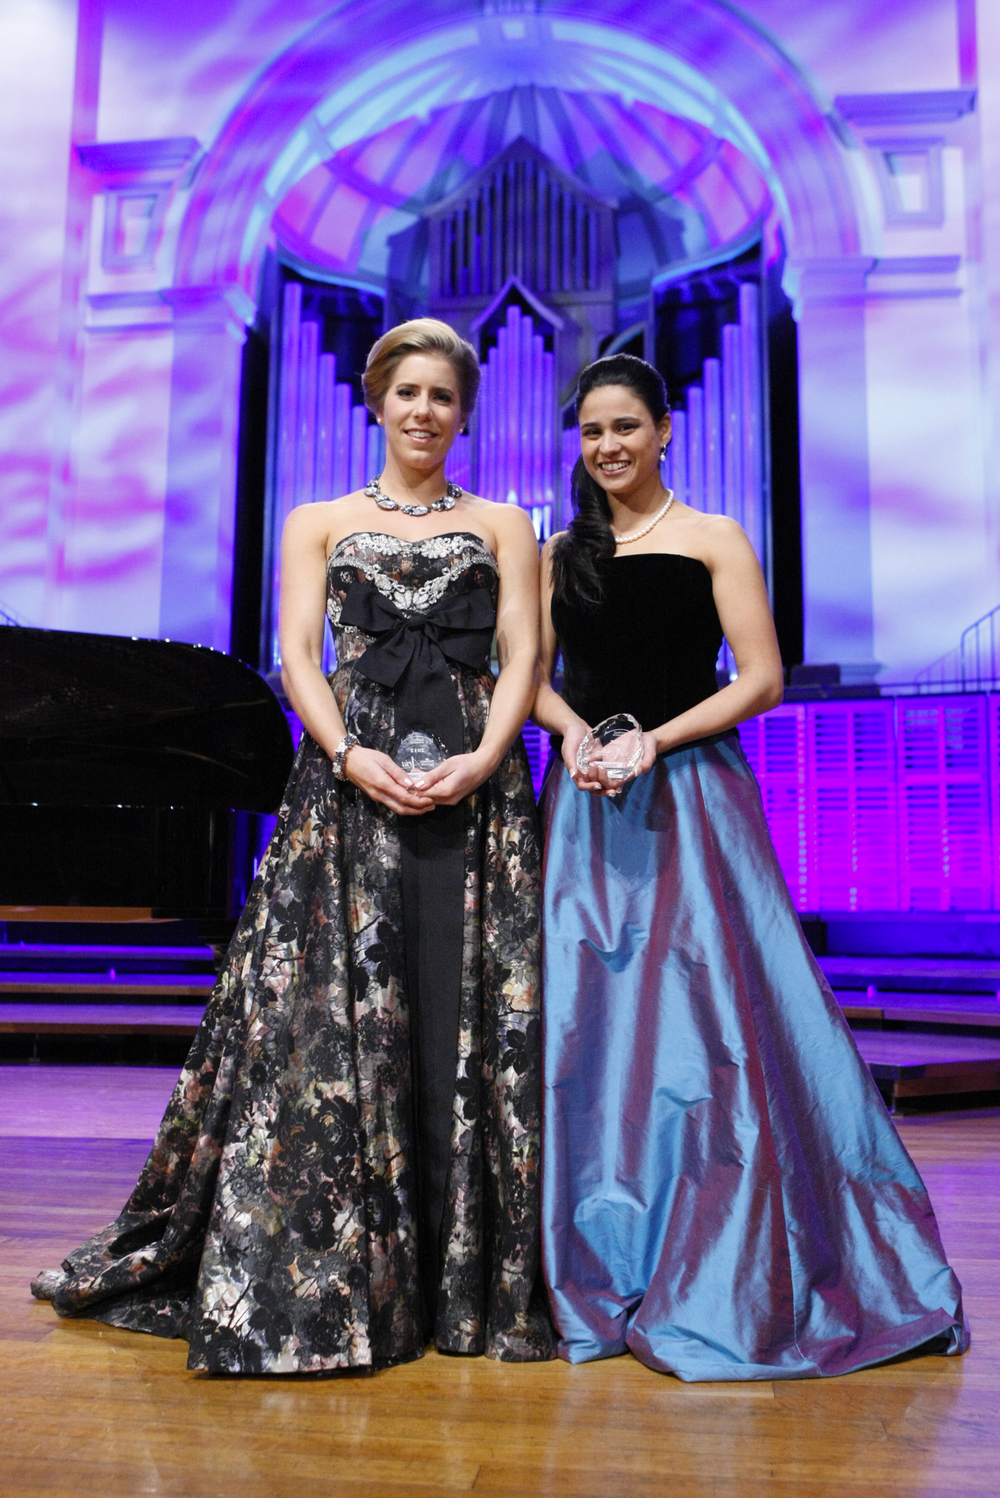 Stacey Alleaume winner of The Sydney Eisteddfod McDonalds Aria with runner-up Lauren Fagan. Photo: ©  WinkiPop Media.